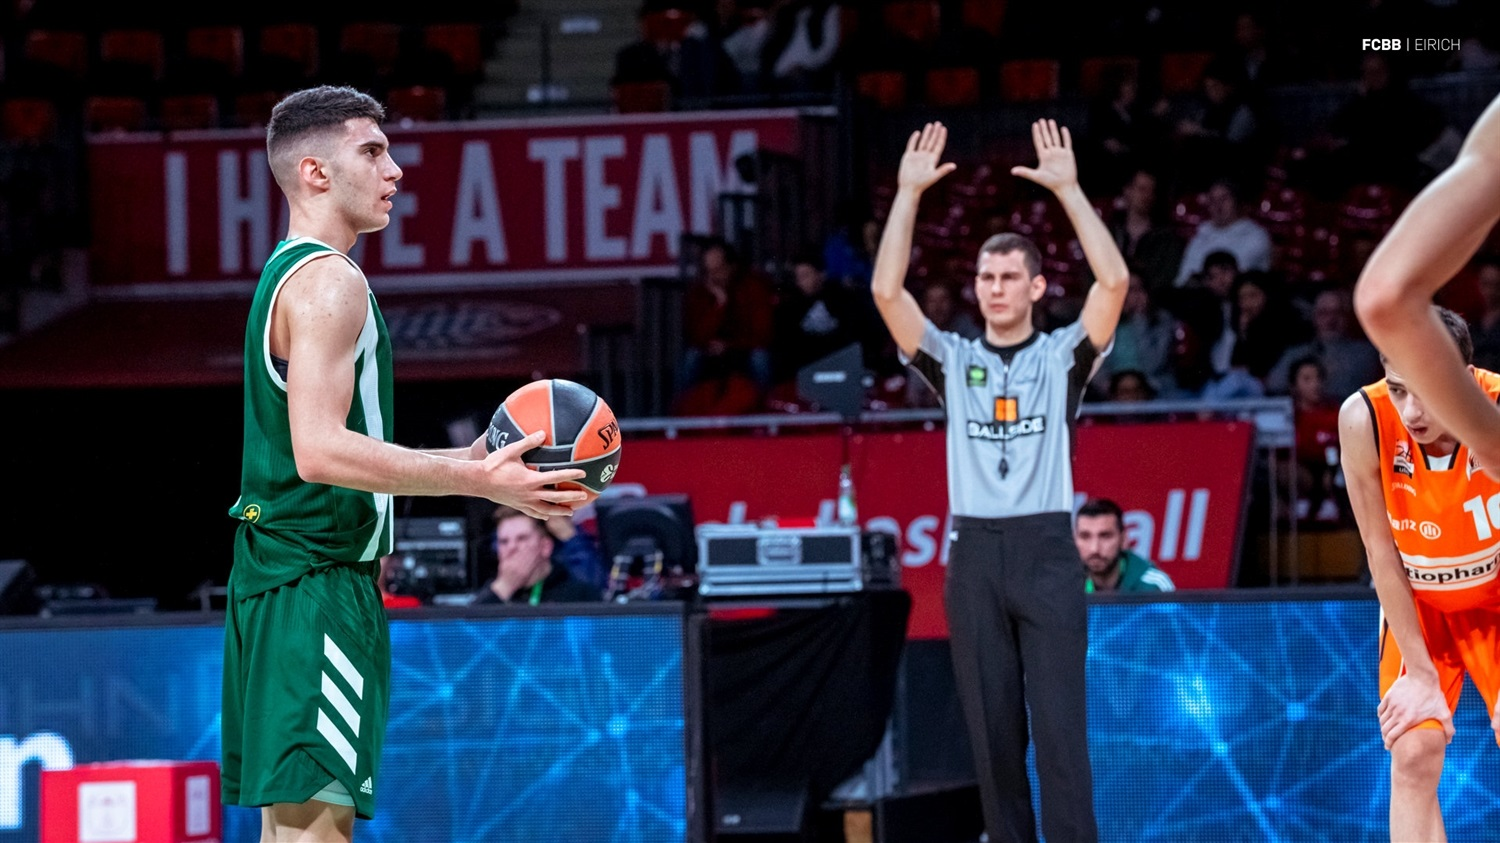 Player U18 Panathinaikos OPAP Athens - ANGT Munich 2019 (photo FCBB - Eirich) JT18